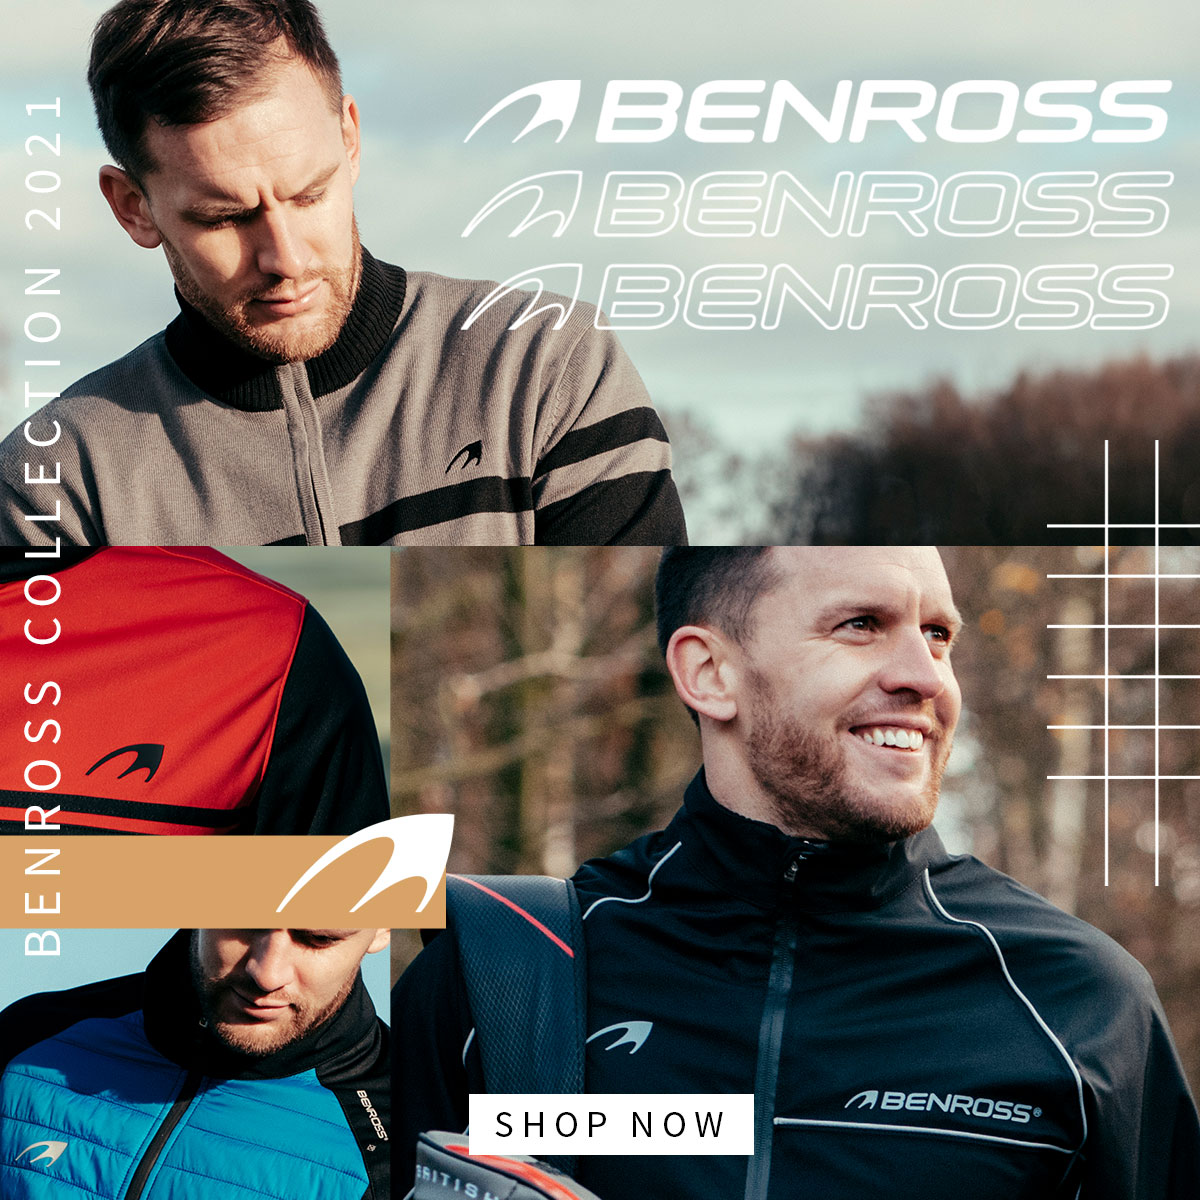 BENROSS CLOTHING